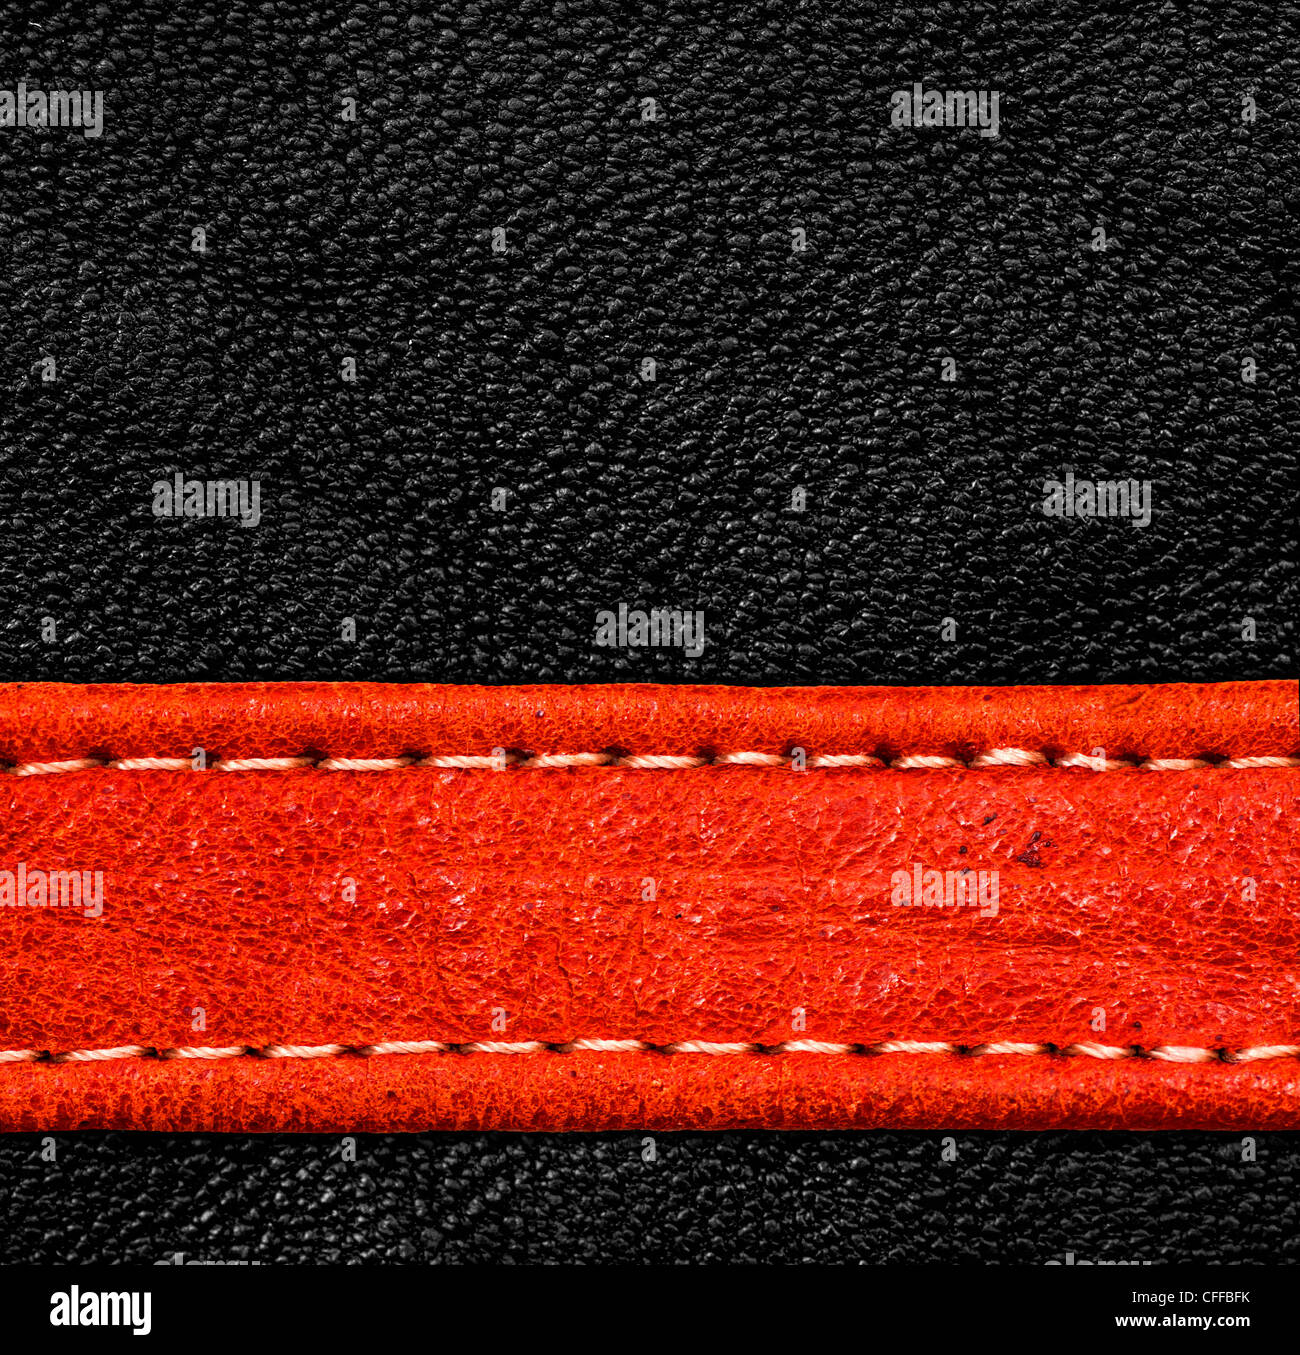 A brown leather texture. high resolution. - Stock Image